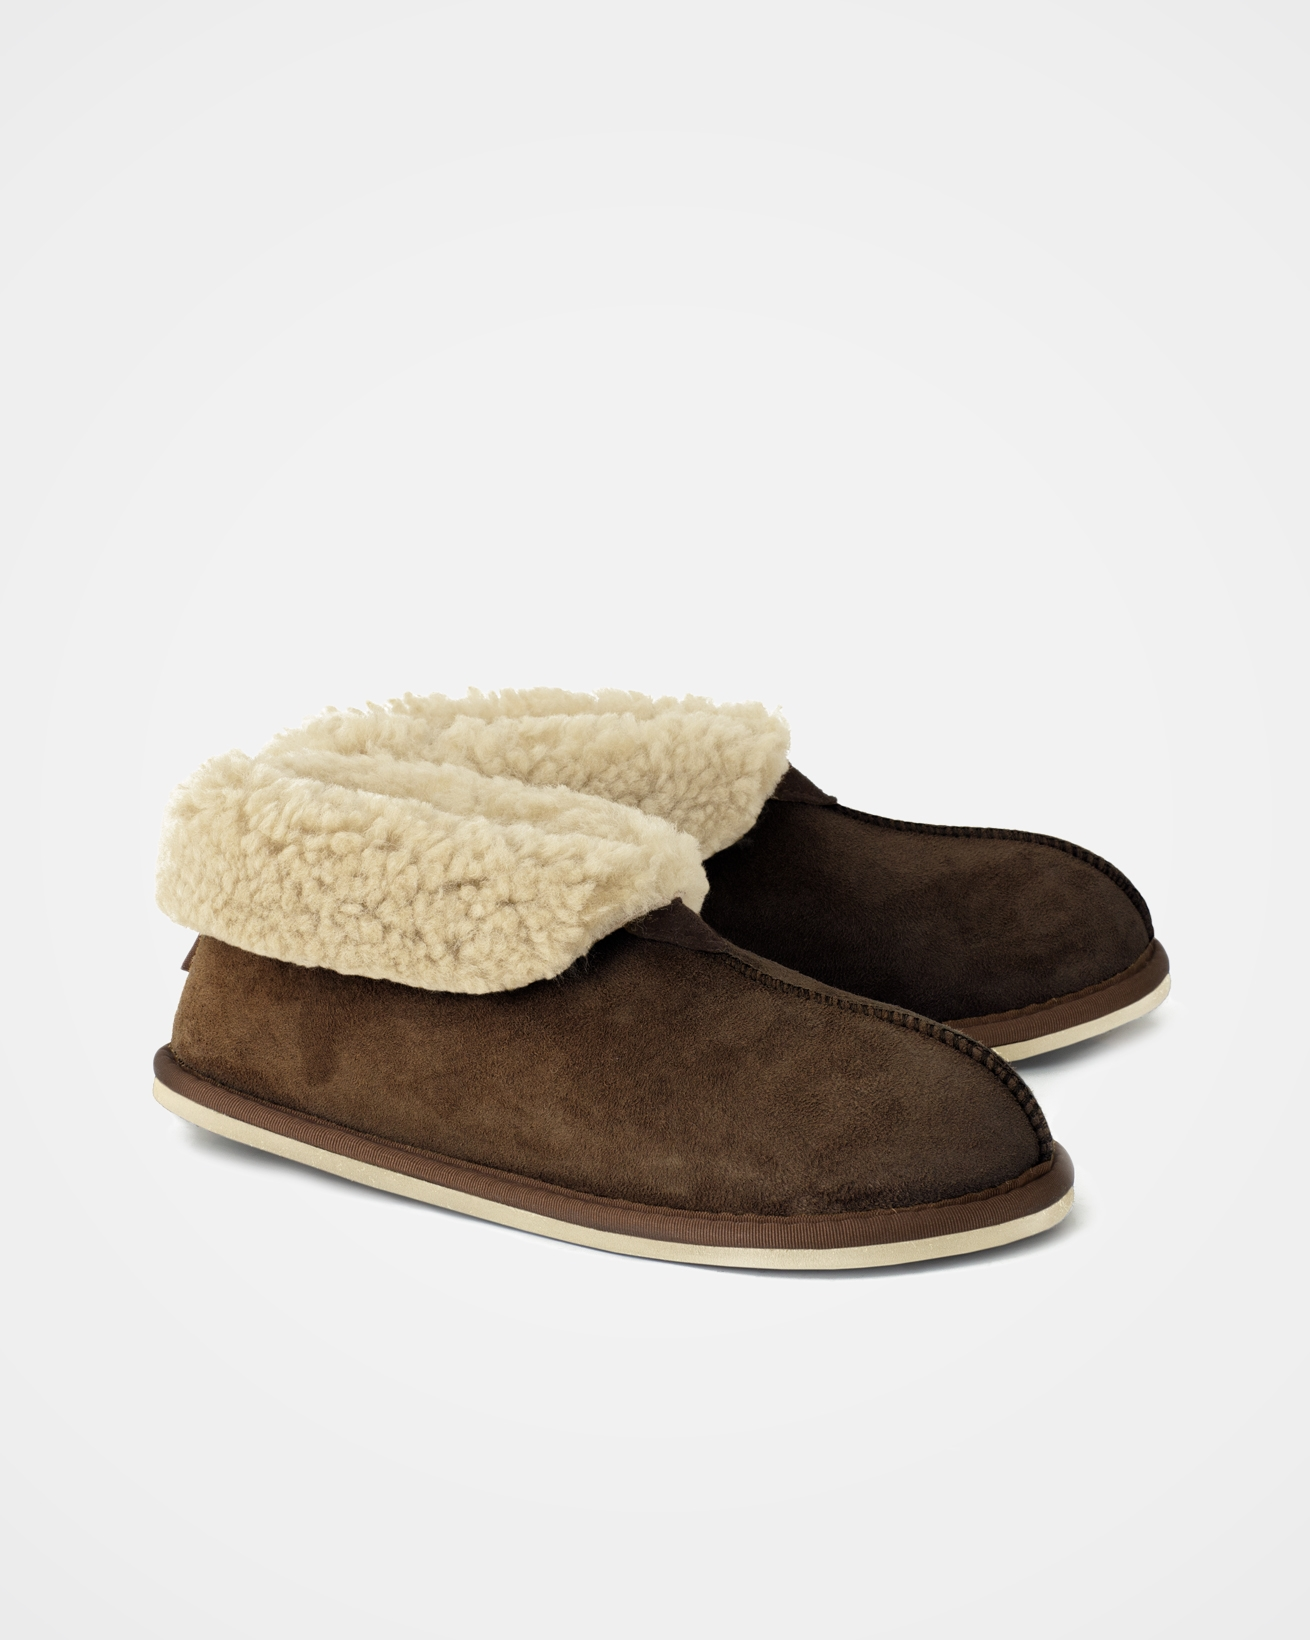 2100_ladies-sheepskin-bootee-slippers_mocca_cream_pair.jpg